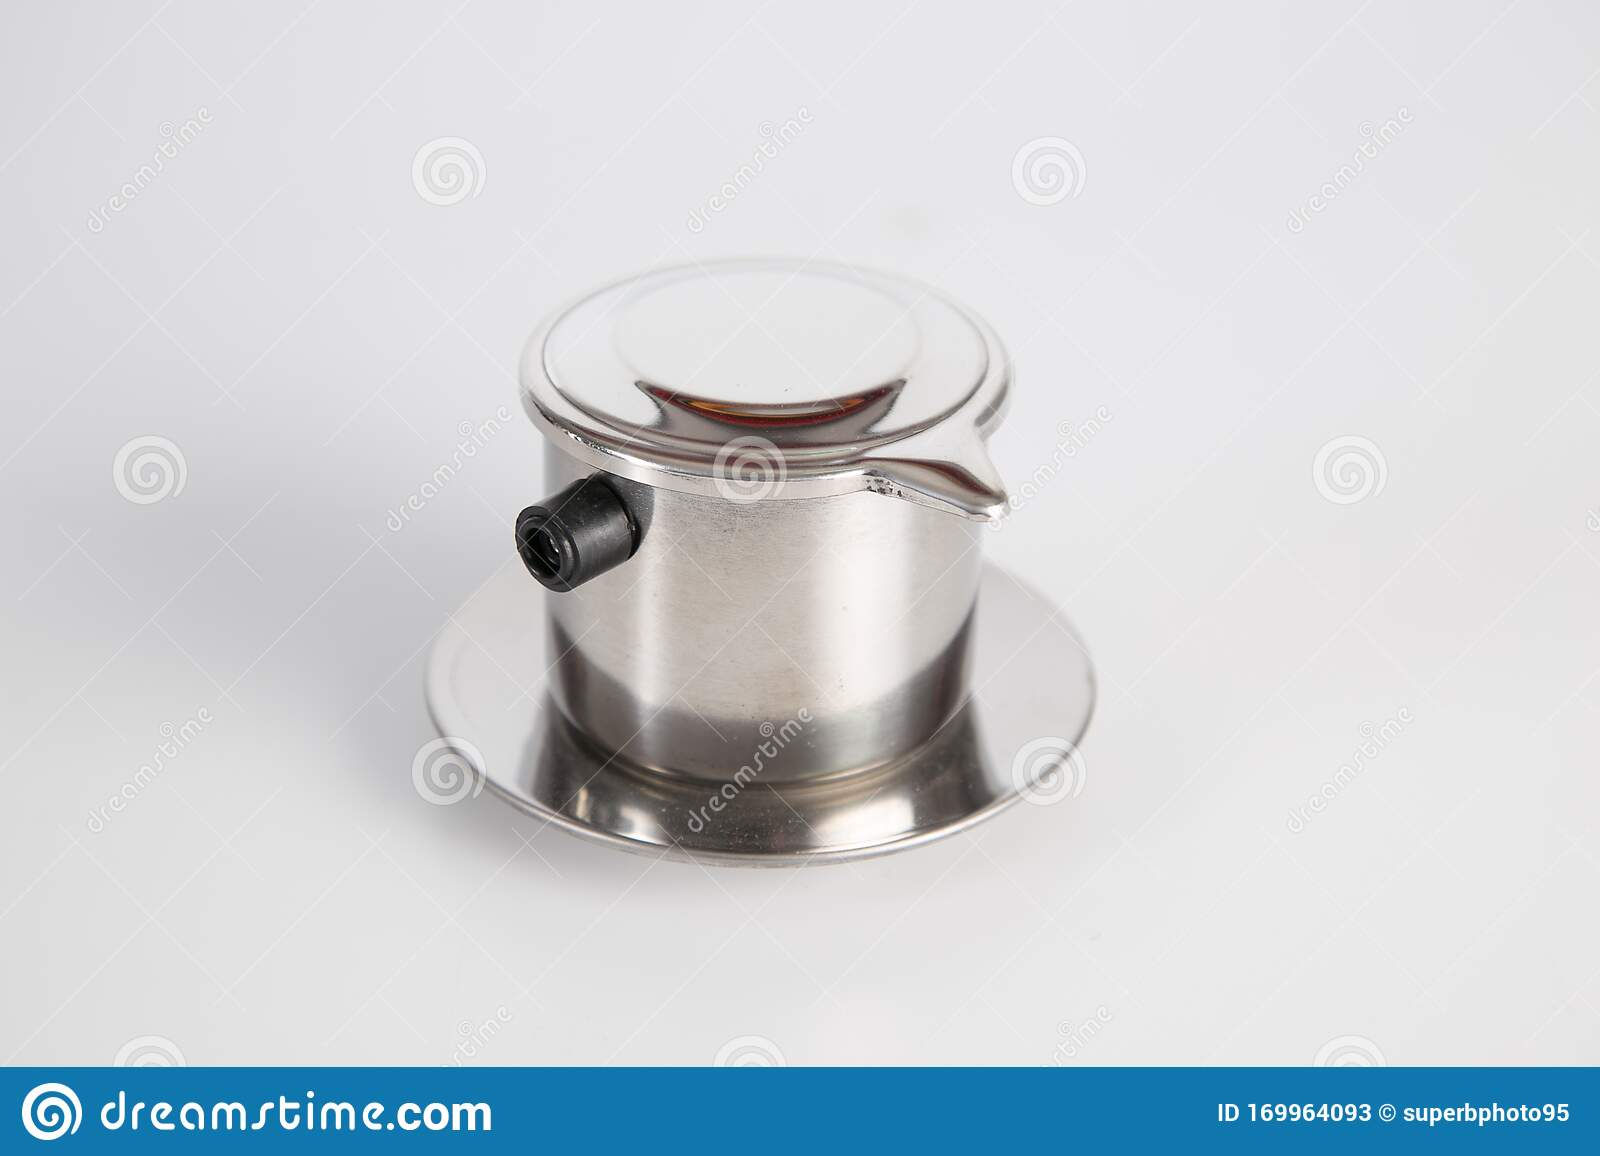 Vietnamese Coffee Press On White Background Metallic Coffee Filter Cup Brewing Coffee In Vietnam Stainless Steel Single Cup Stock Image Image Of Brown Container 169964093